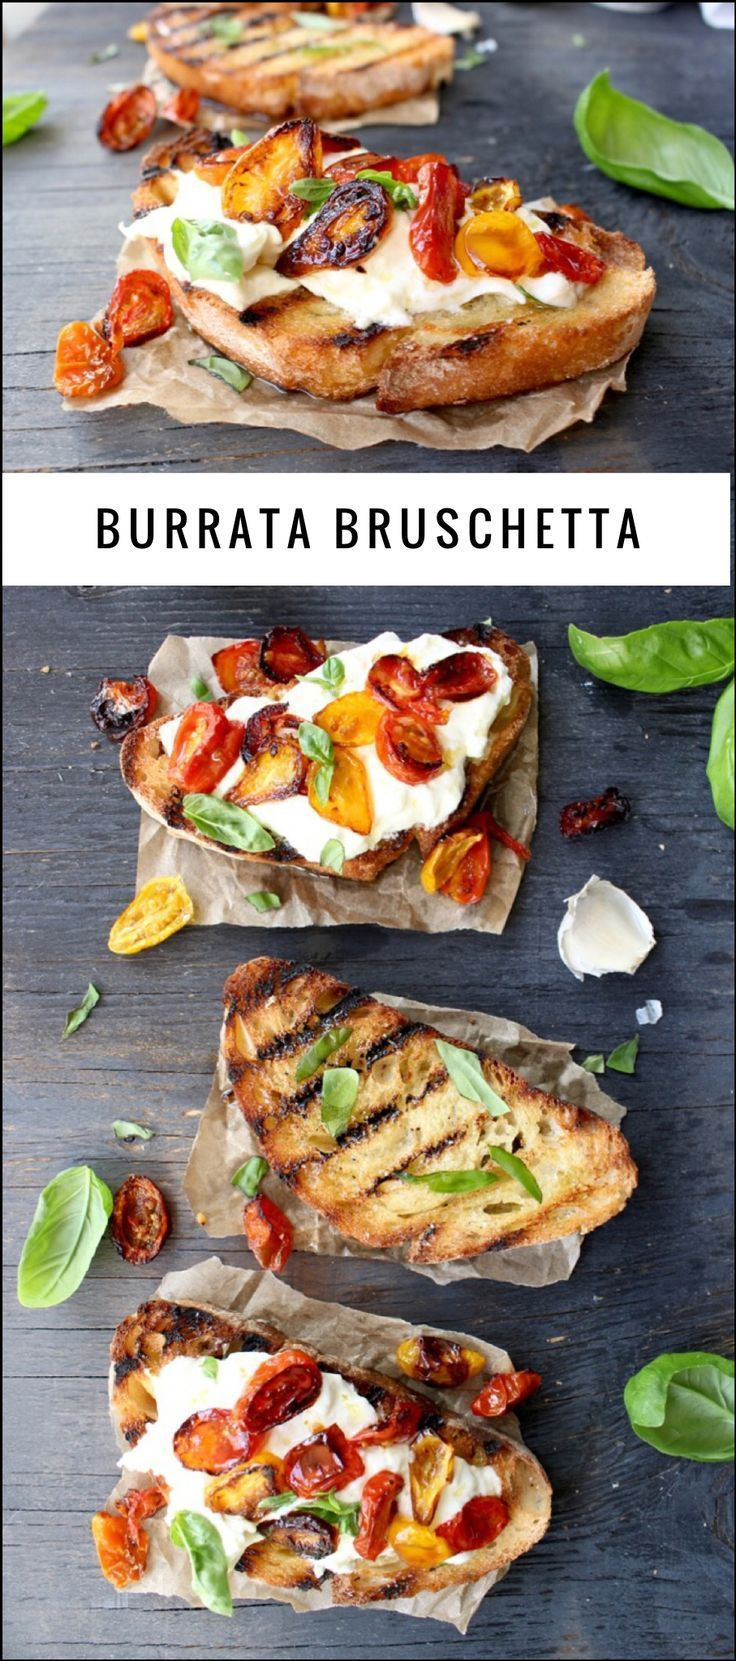 Burrata Bruschetta Recipe | http://CiaoFlorentina.com - try it for dinner this week!